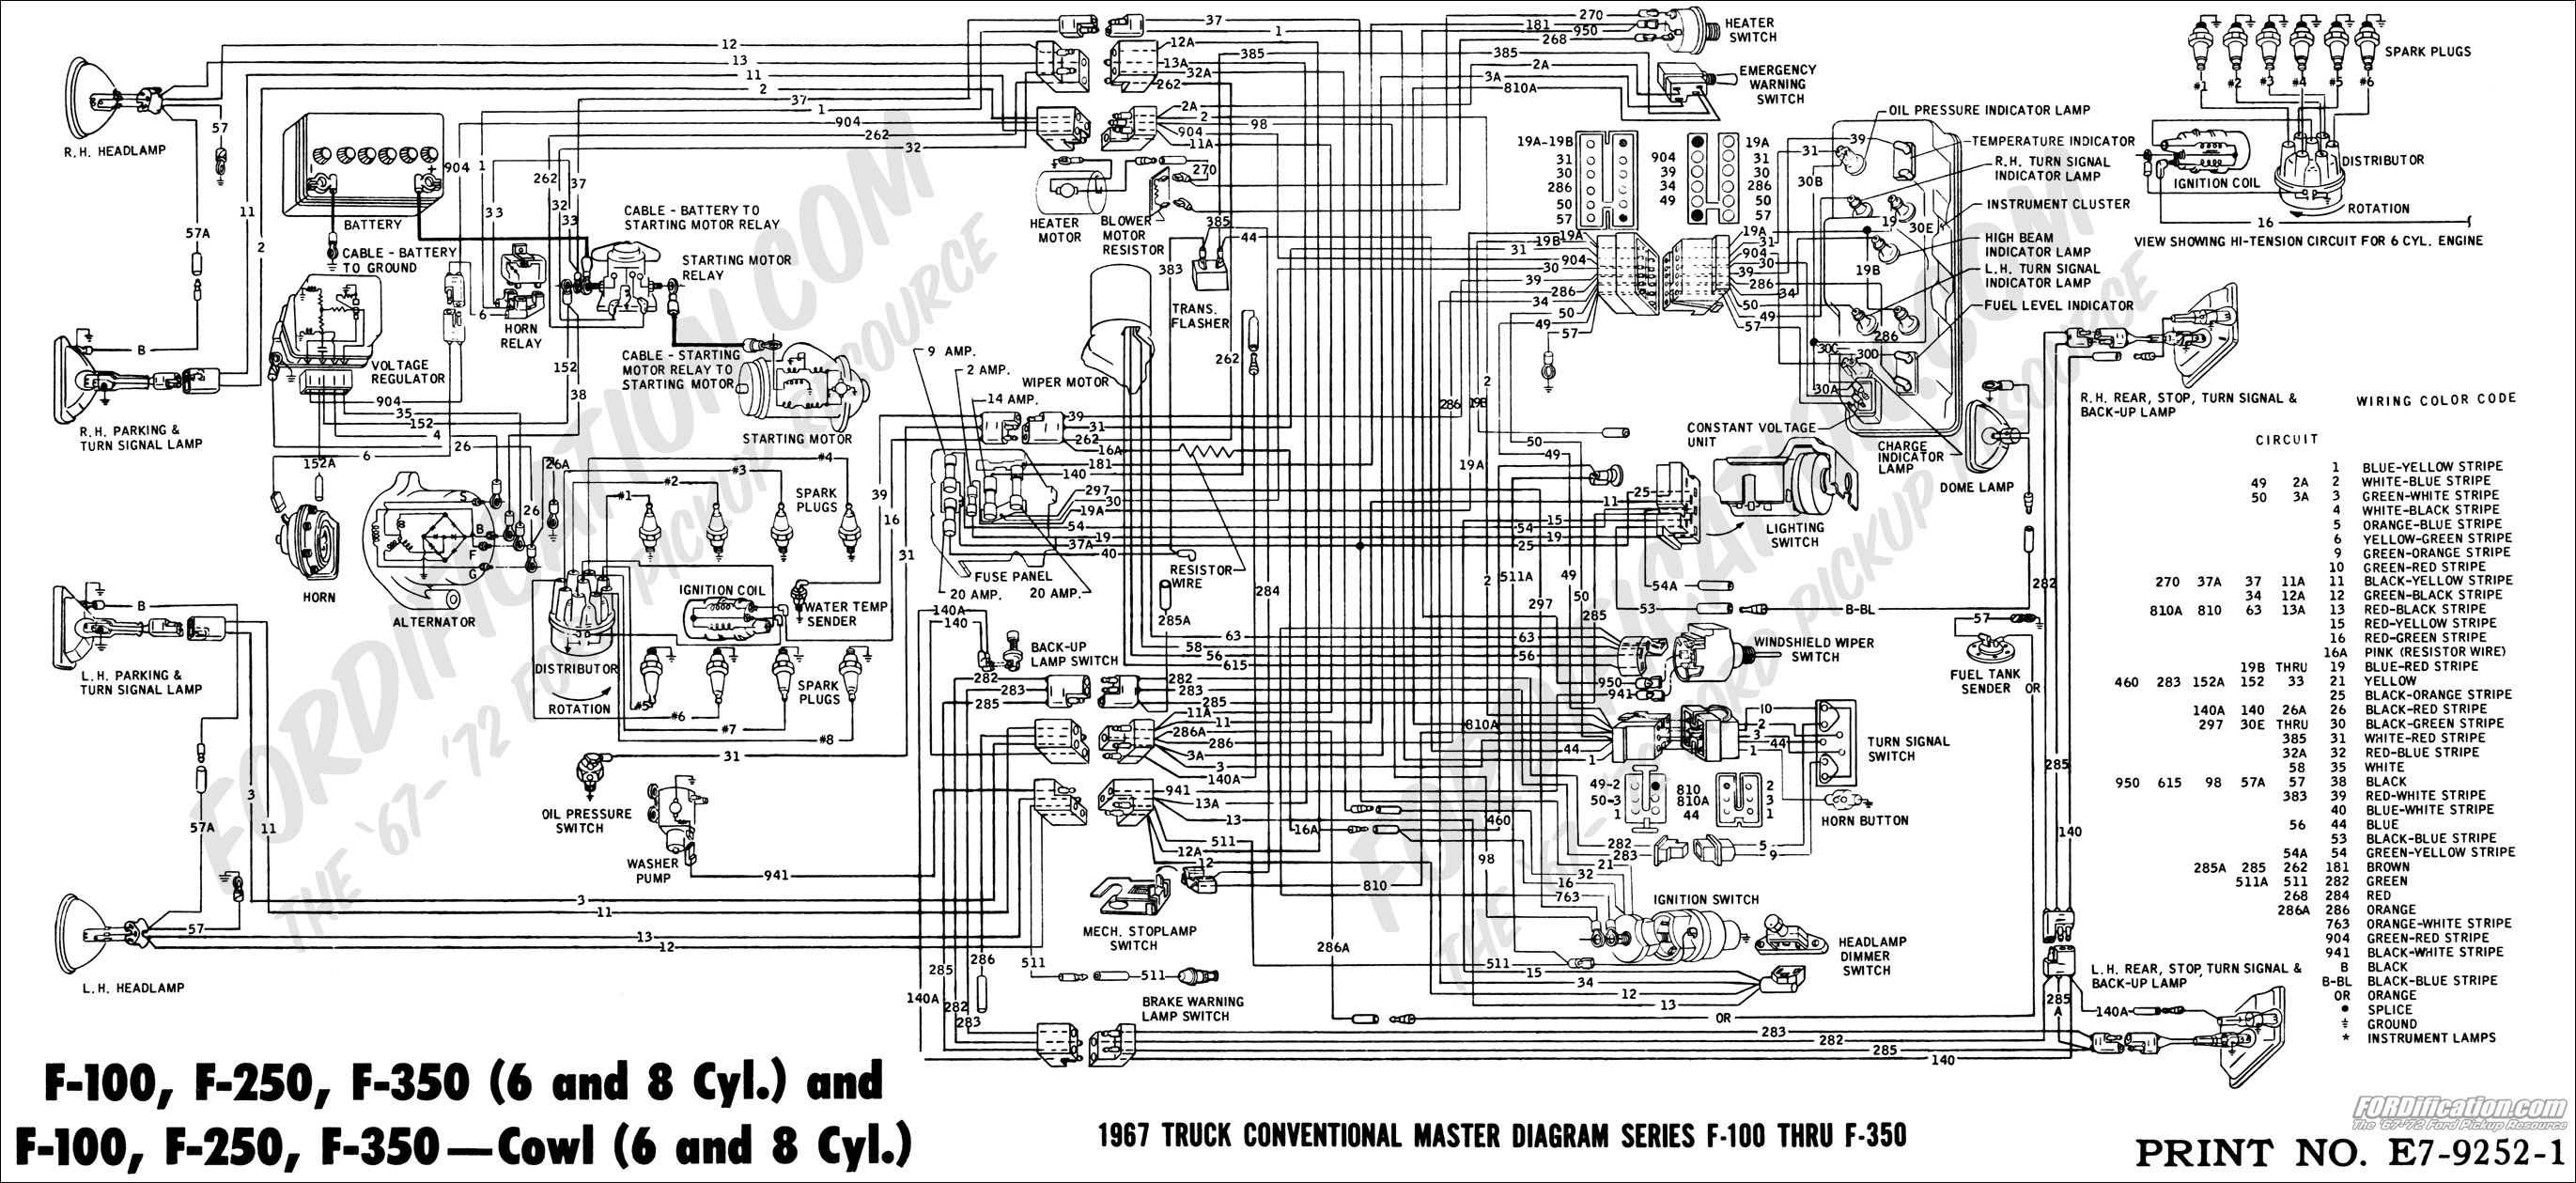 Wiring Diagram Ford E350 Van from www.fordification.com